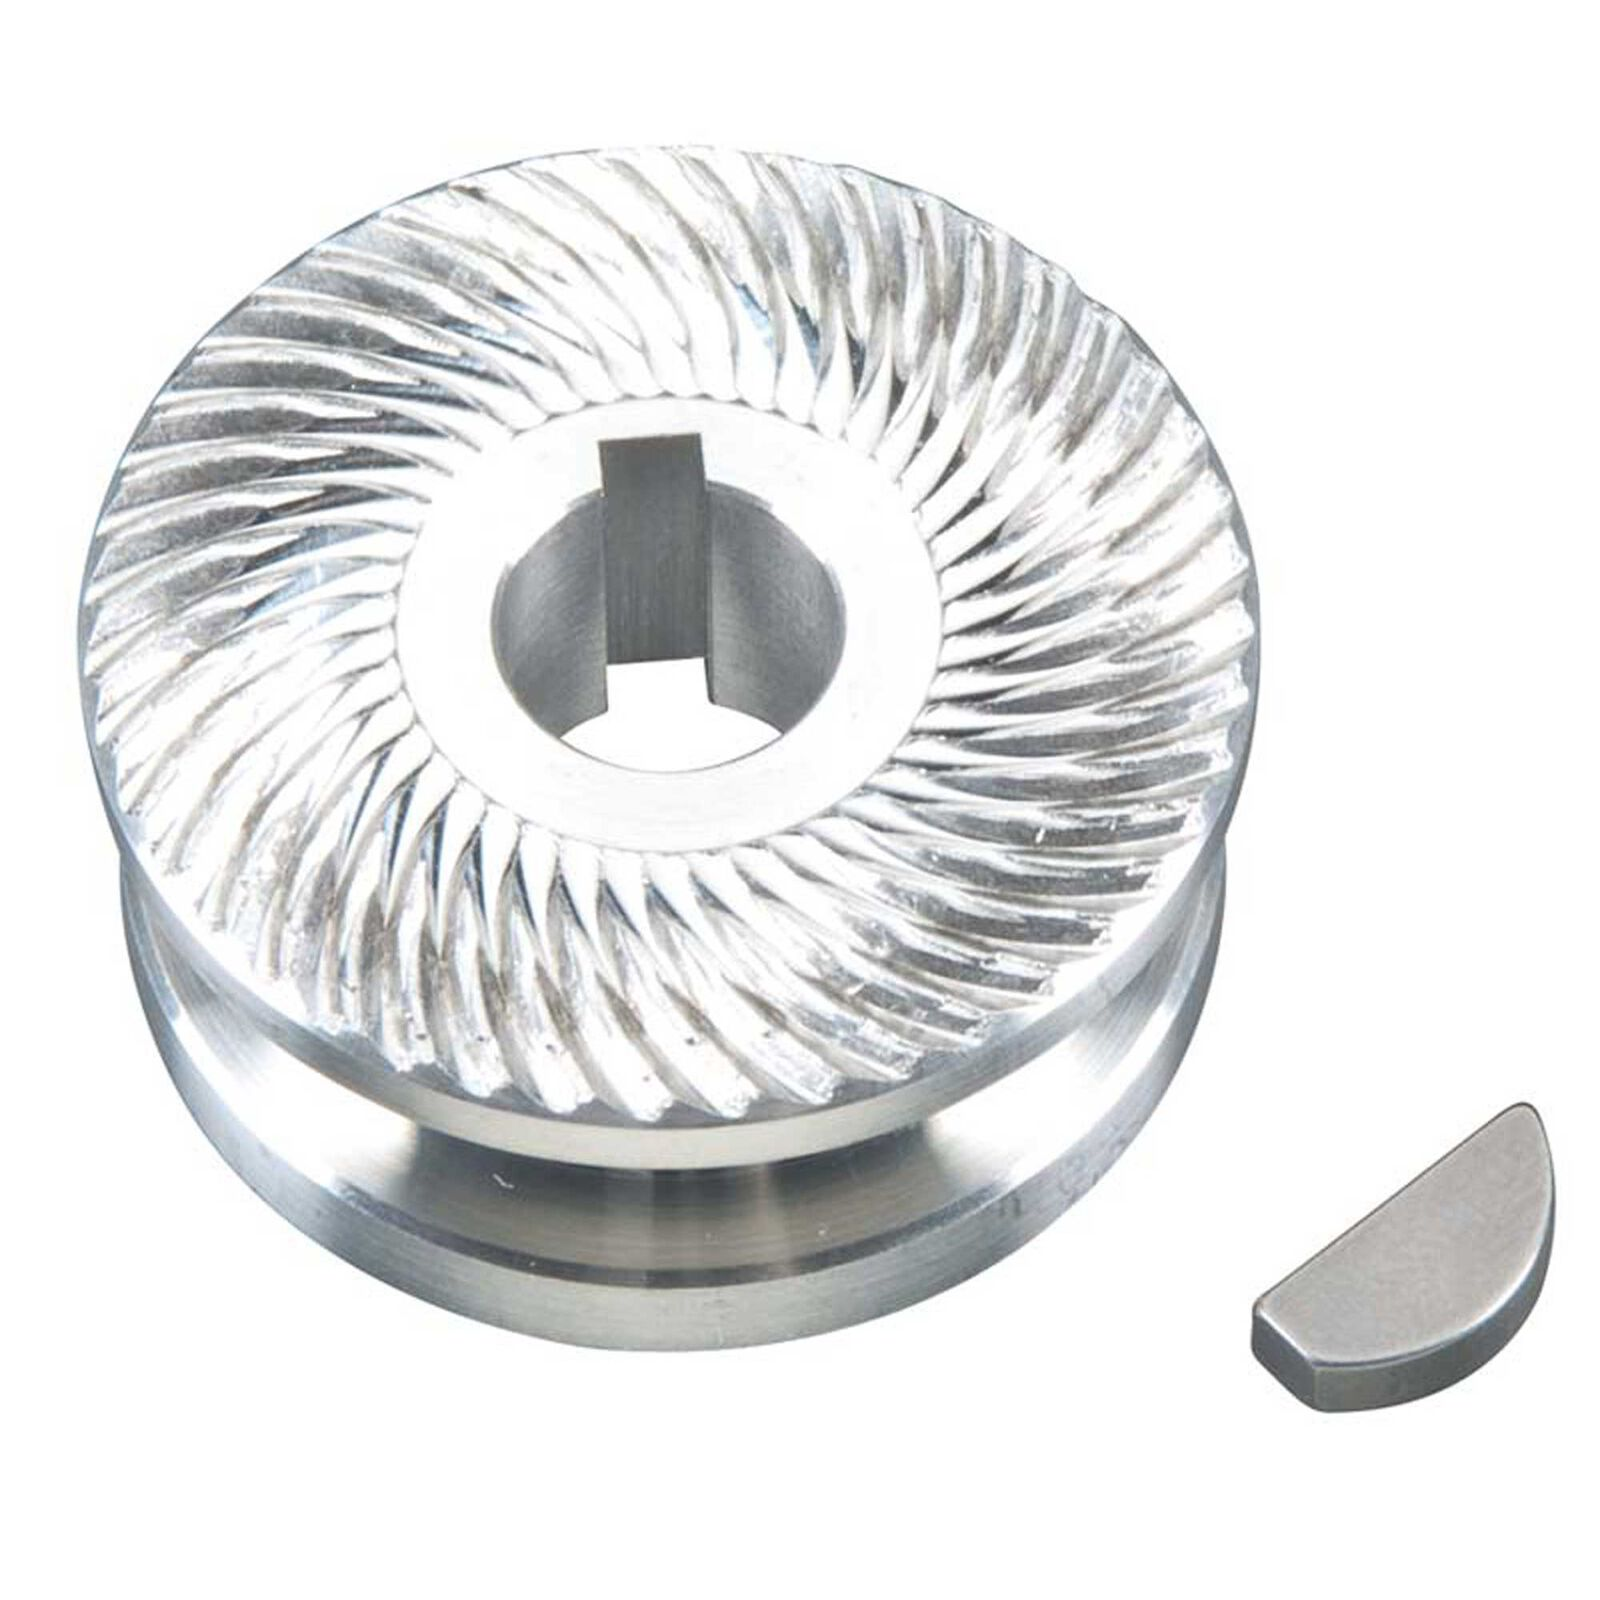 Drive Washer: FS155A-P